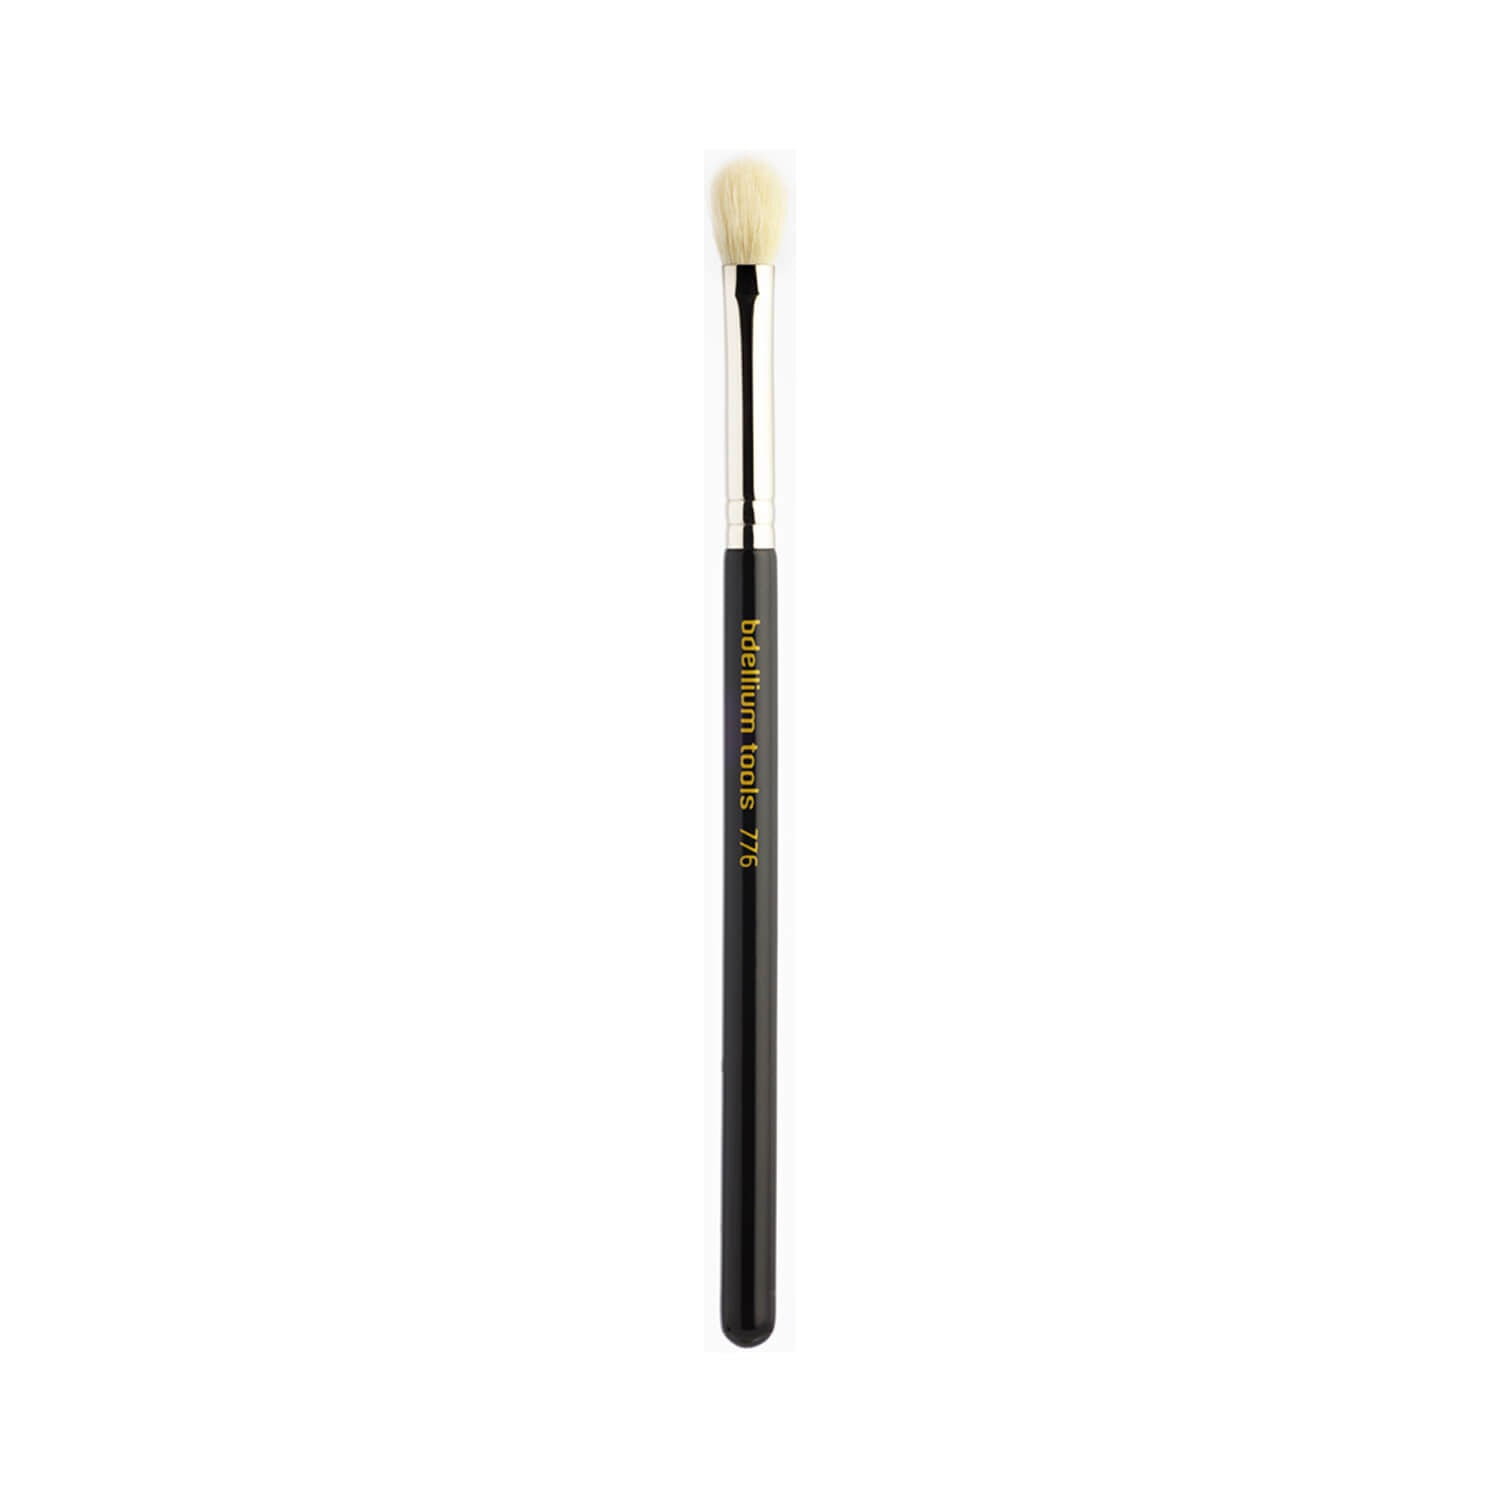 BDellium Tools Maestro Line 776 Blending Brush Black